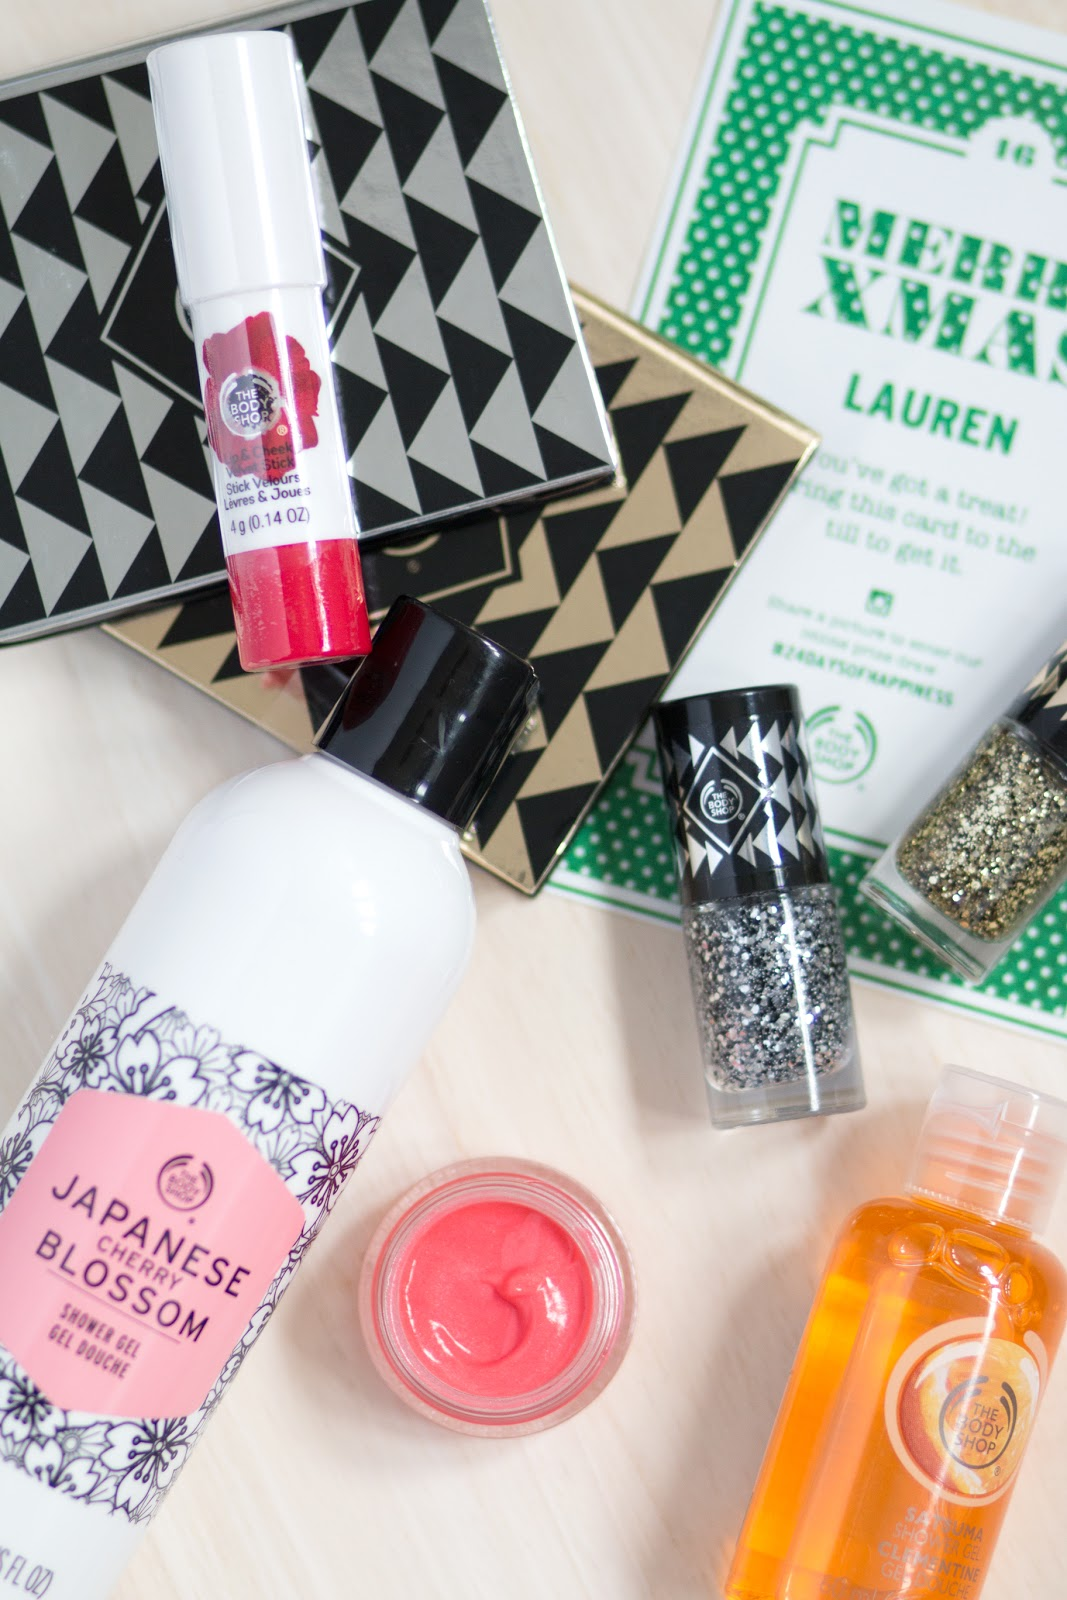 THE BODY SHOP'S 24 DAYS OF HAPPINESS